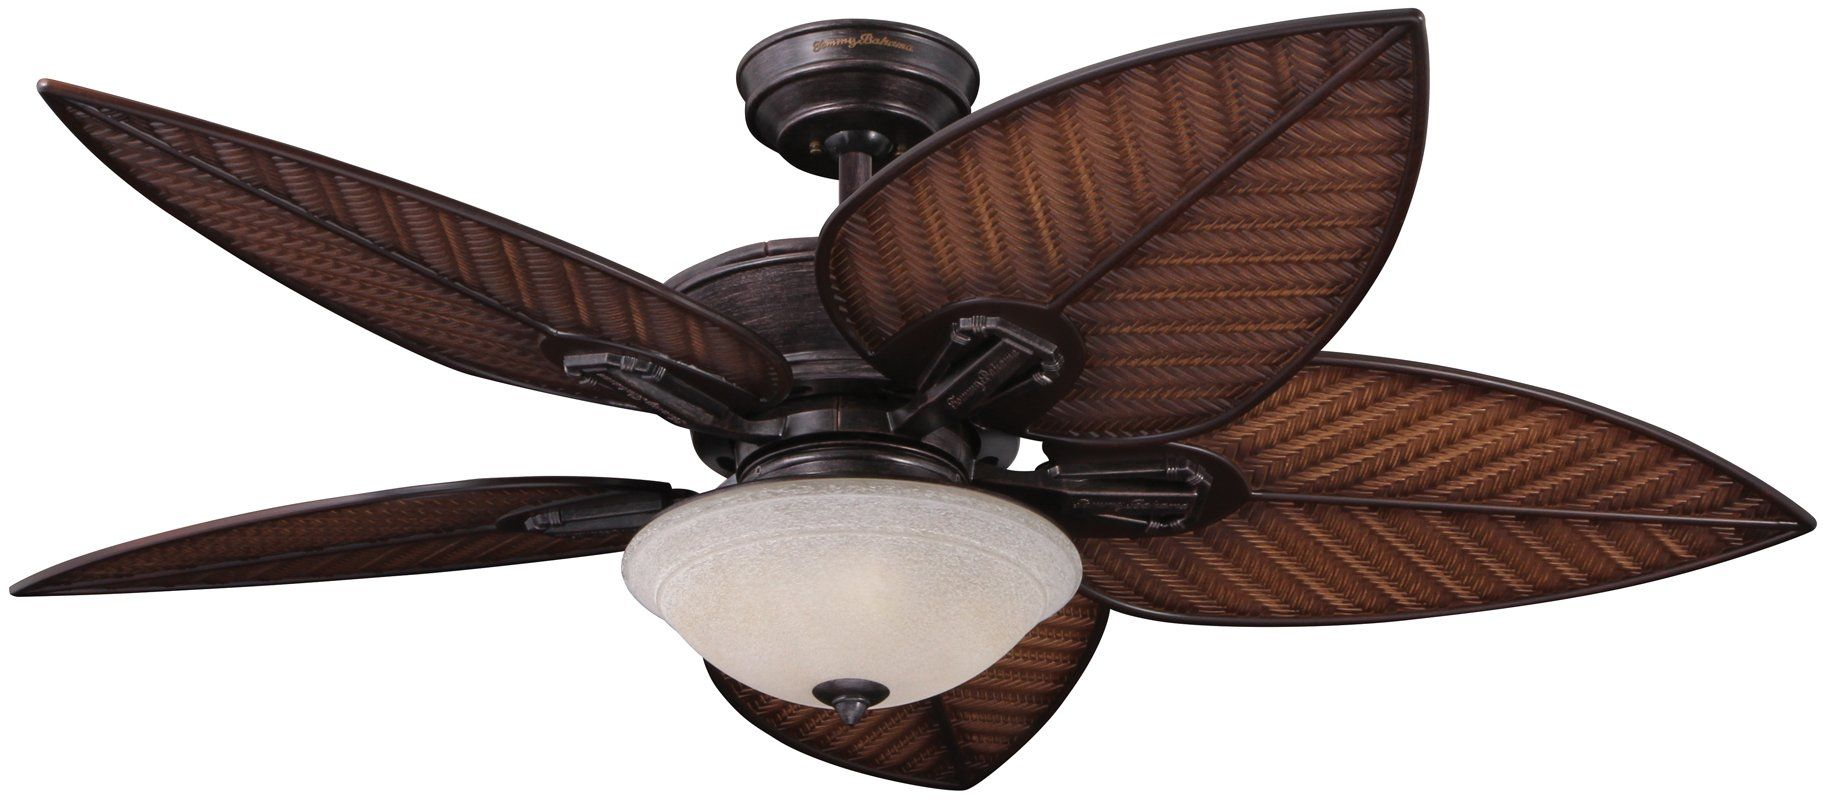 rs online low india amazon fans ceilings starting prices b ceiling at buy designer fan in